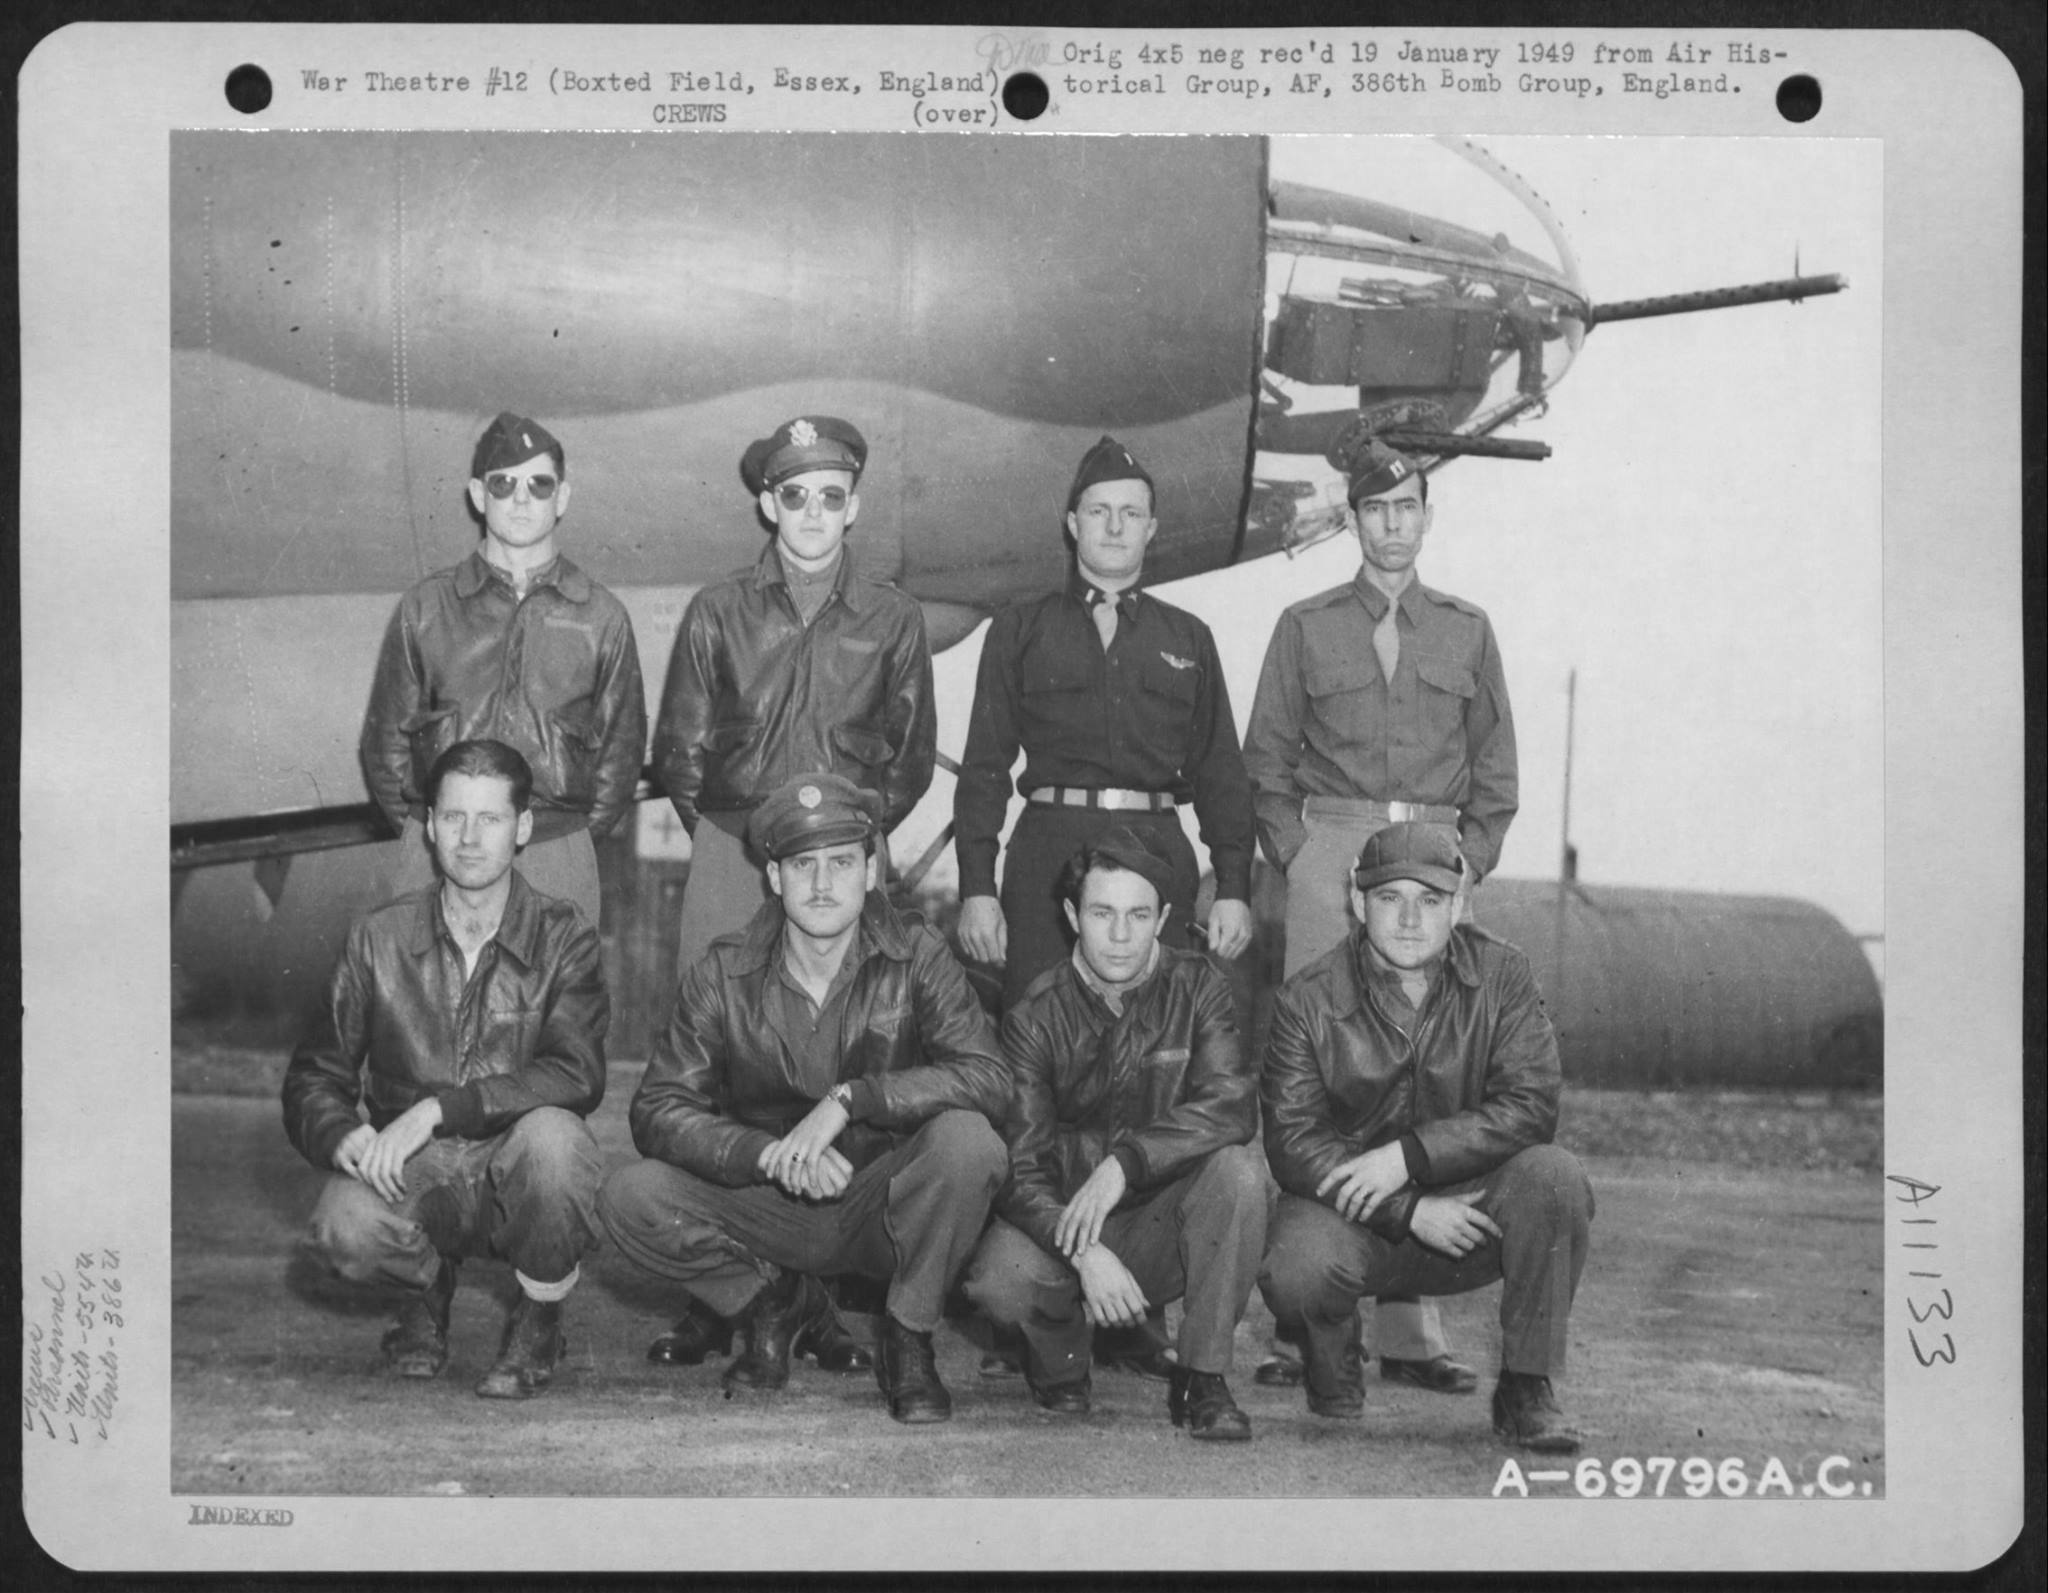 USAAF B 26 Marauder 386BG554BS with Maj White and crew at their base in Boxted Essex England 12 Sep 1943 01